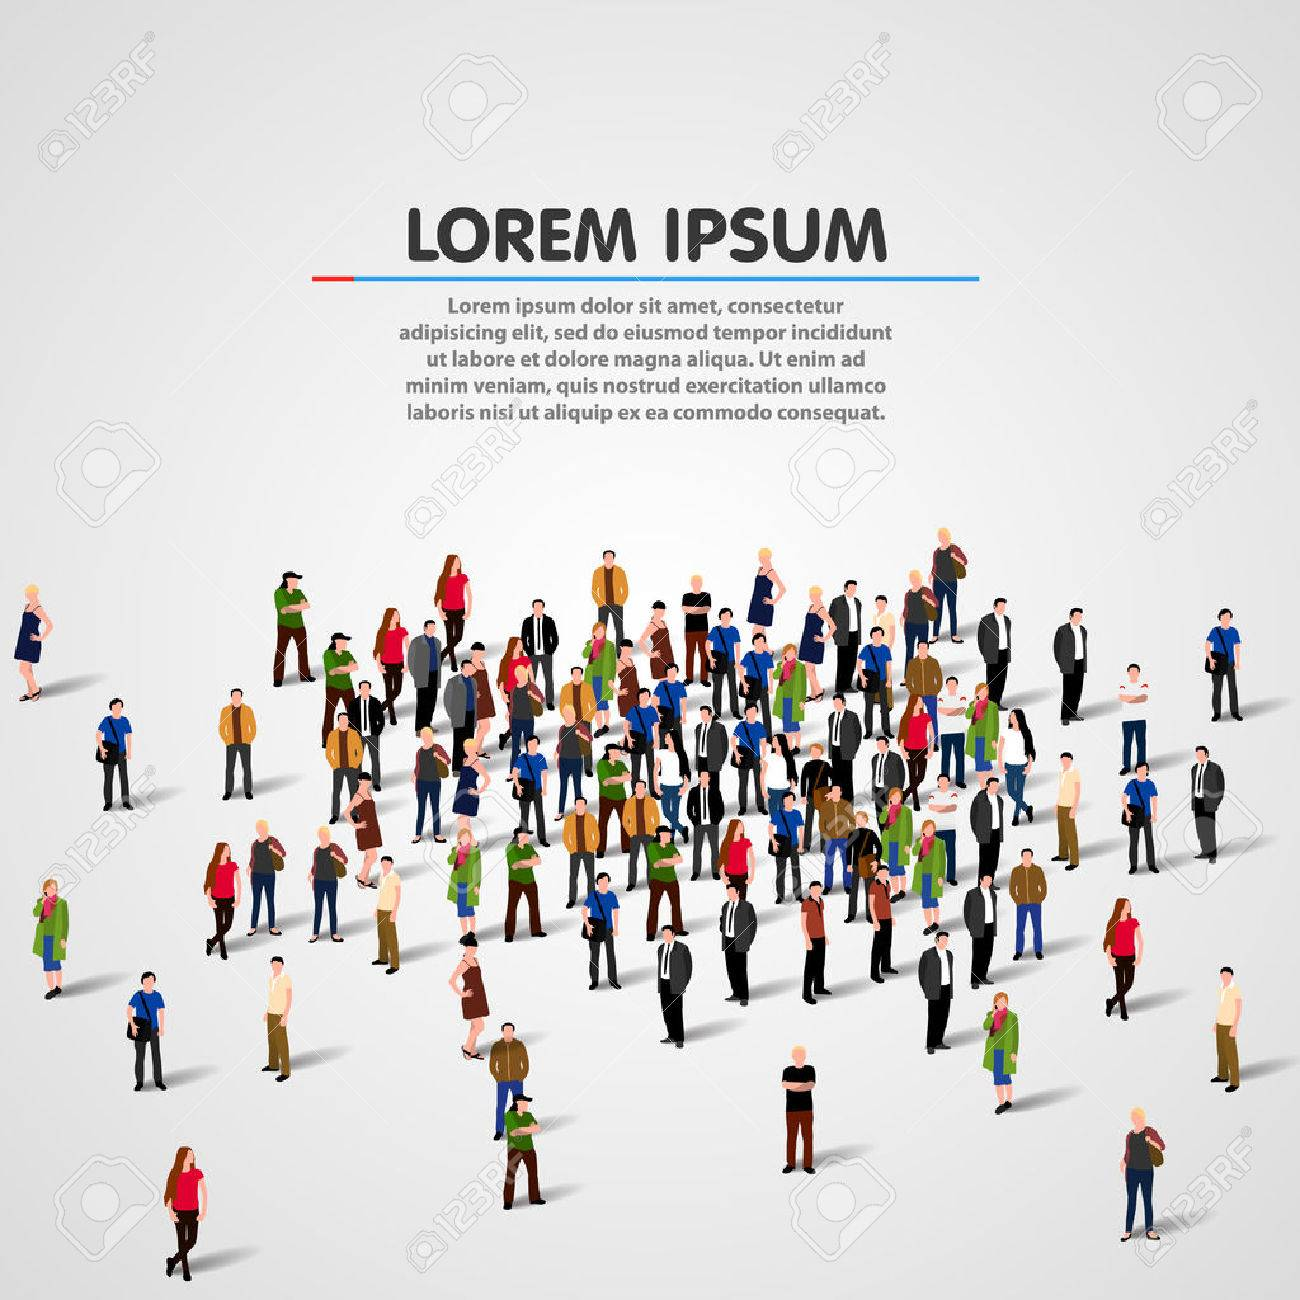 Big people crowd on white background. Vector illustration. - 58177616